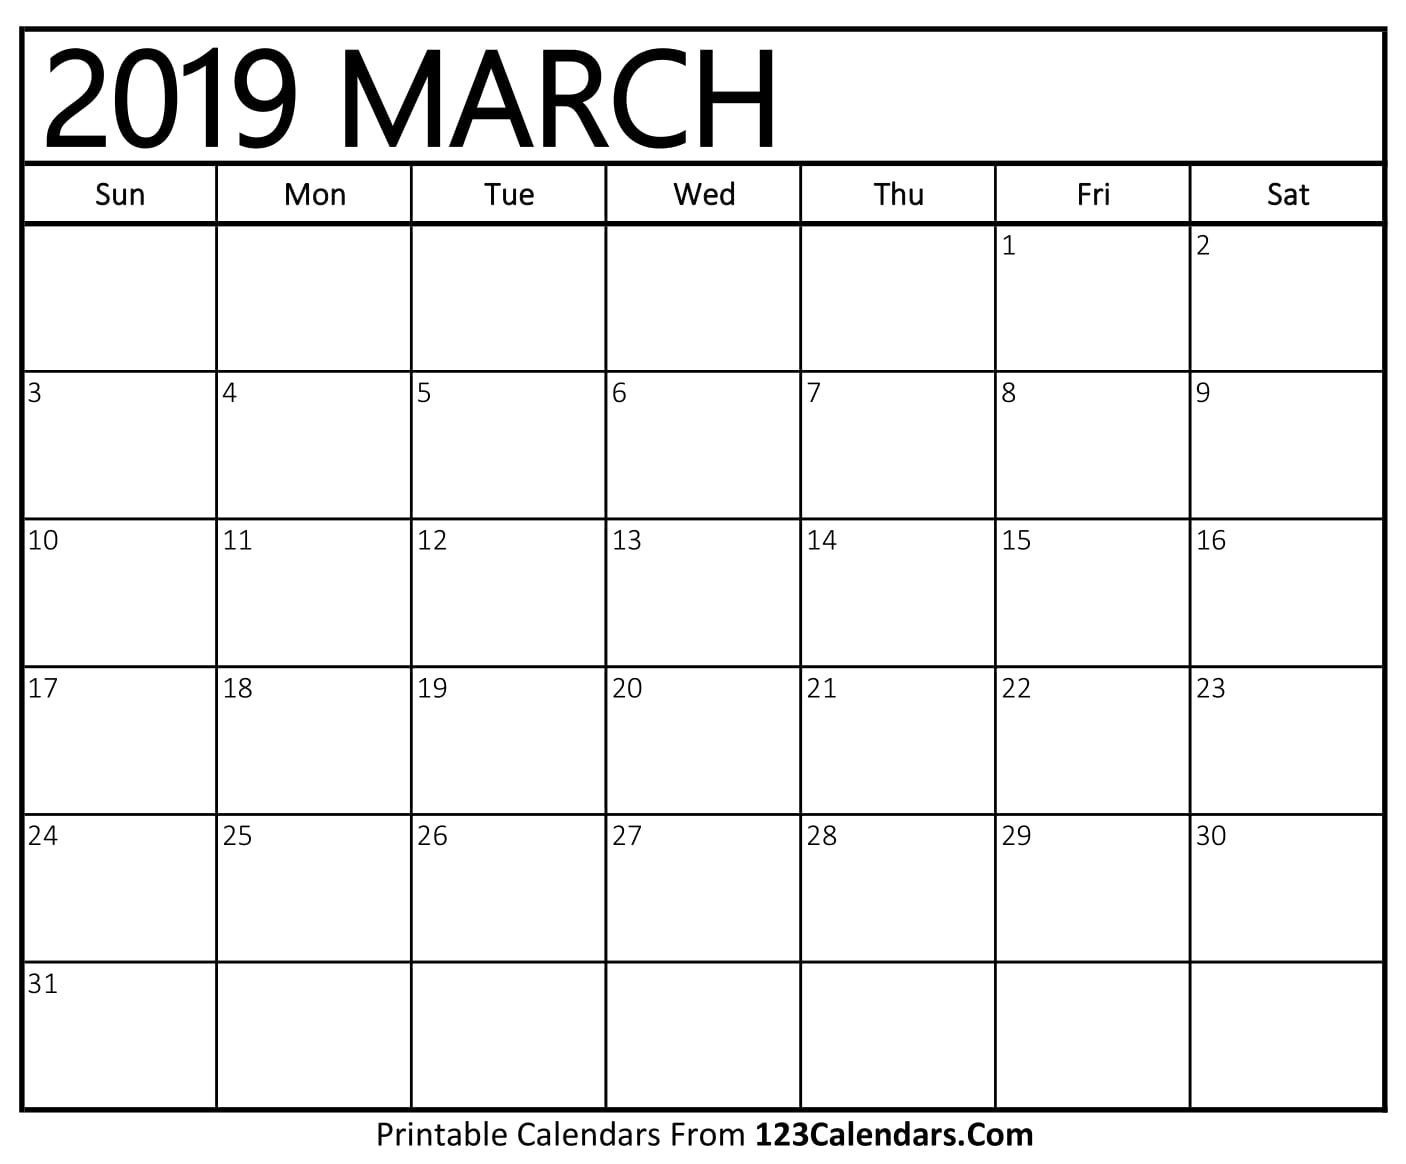 March 2019 Calendar Blank Easily Printable 123calendars